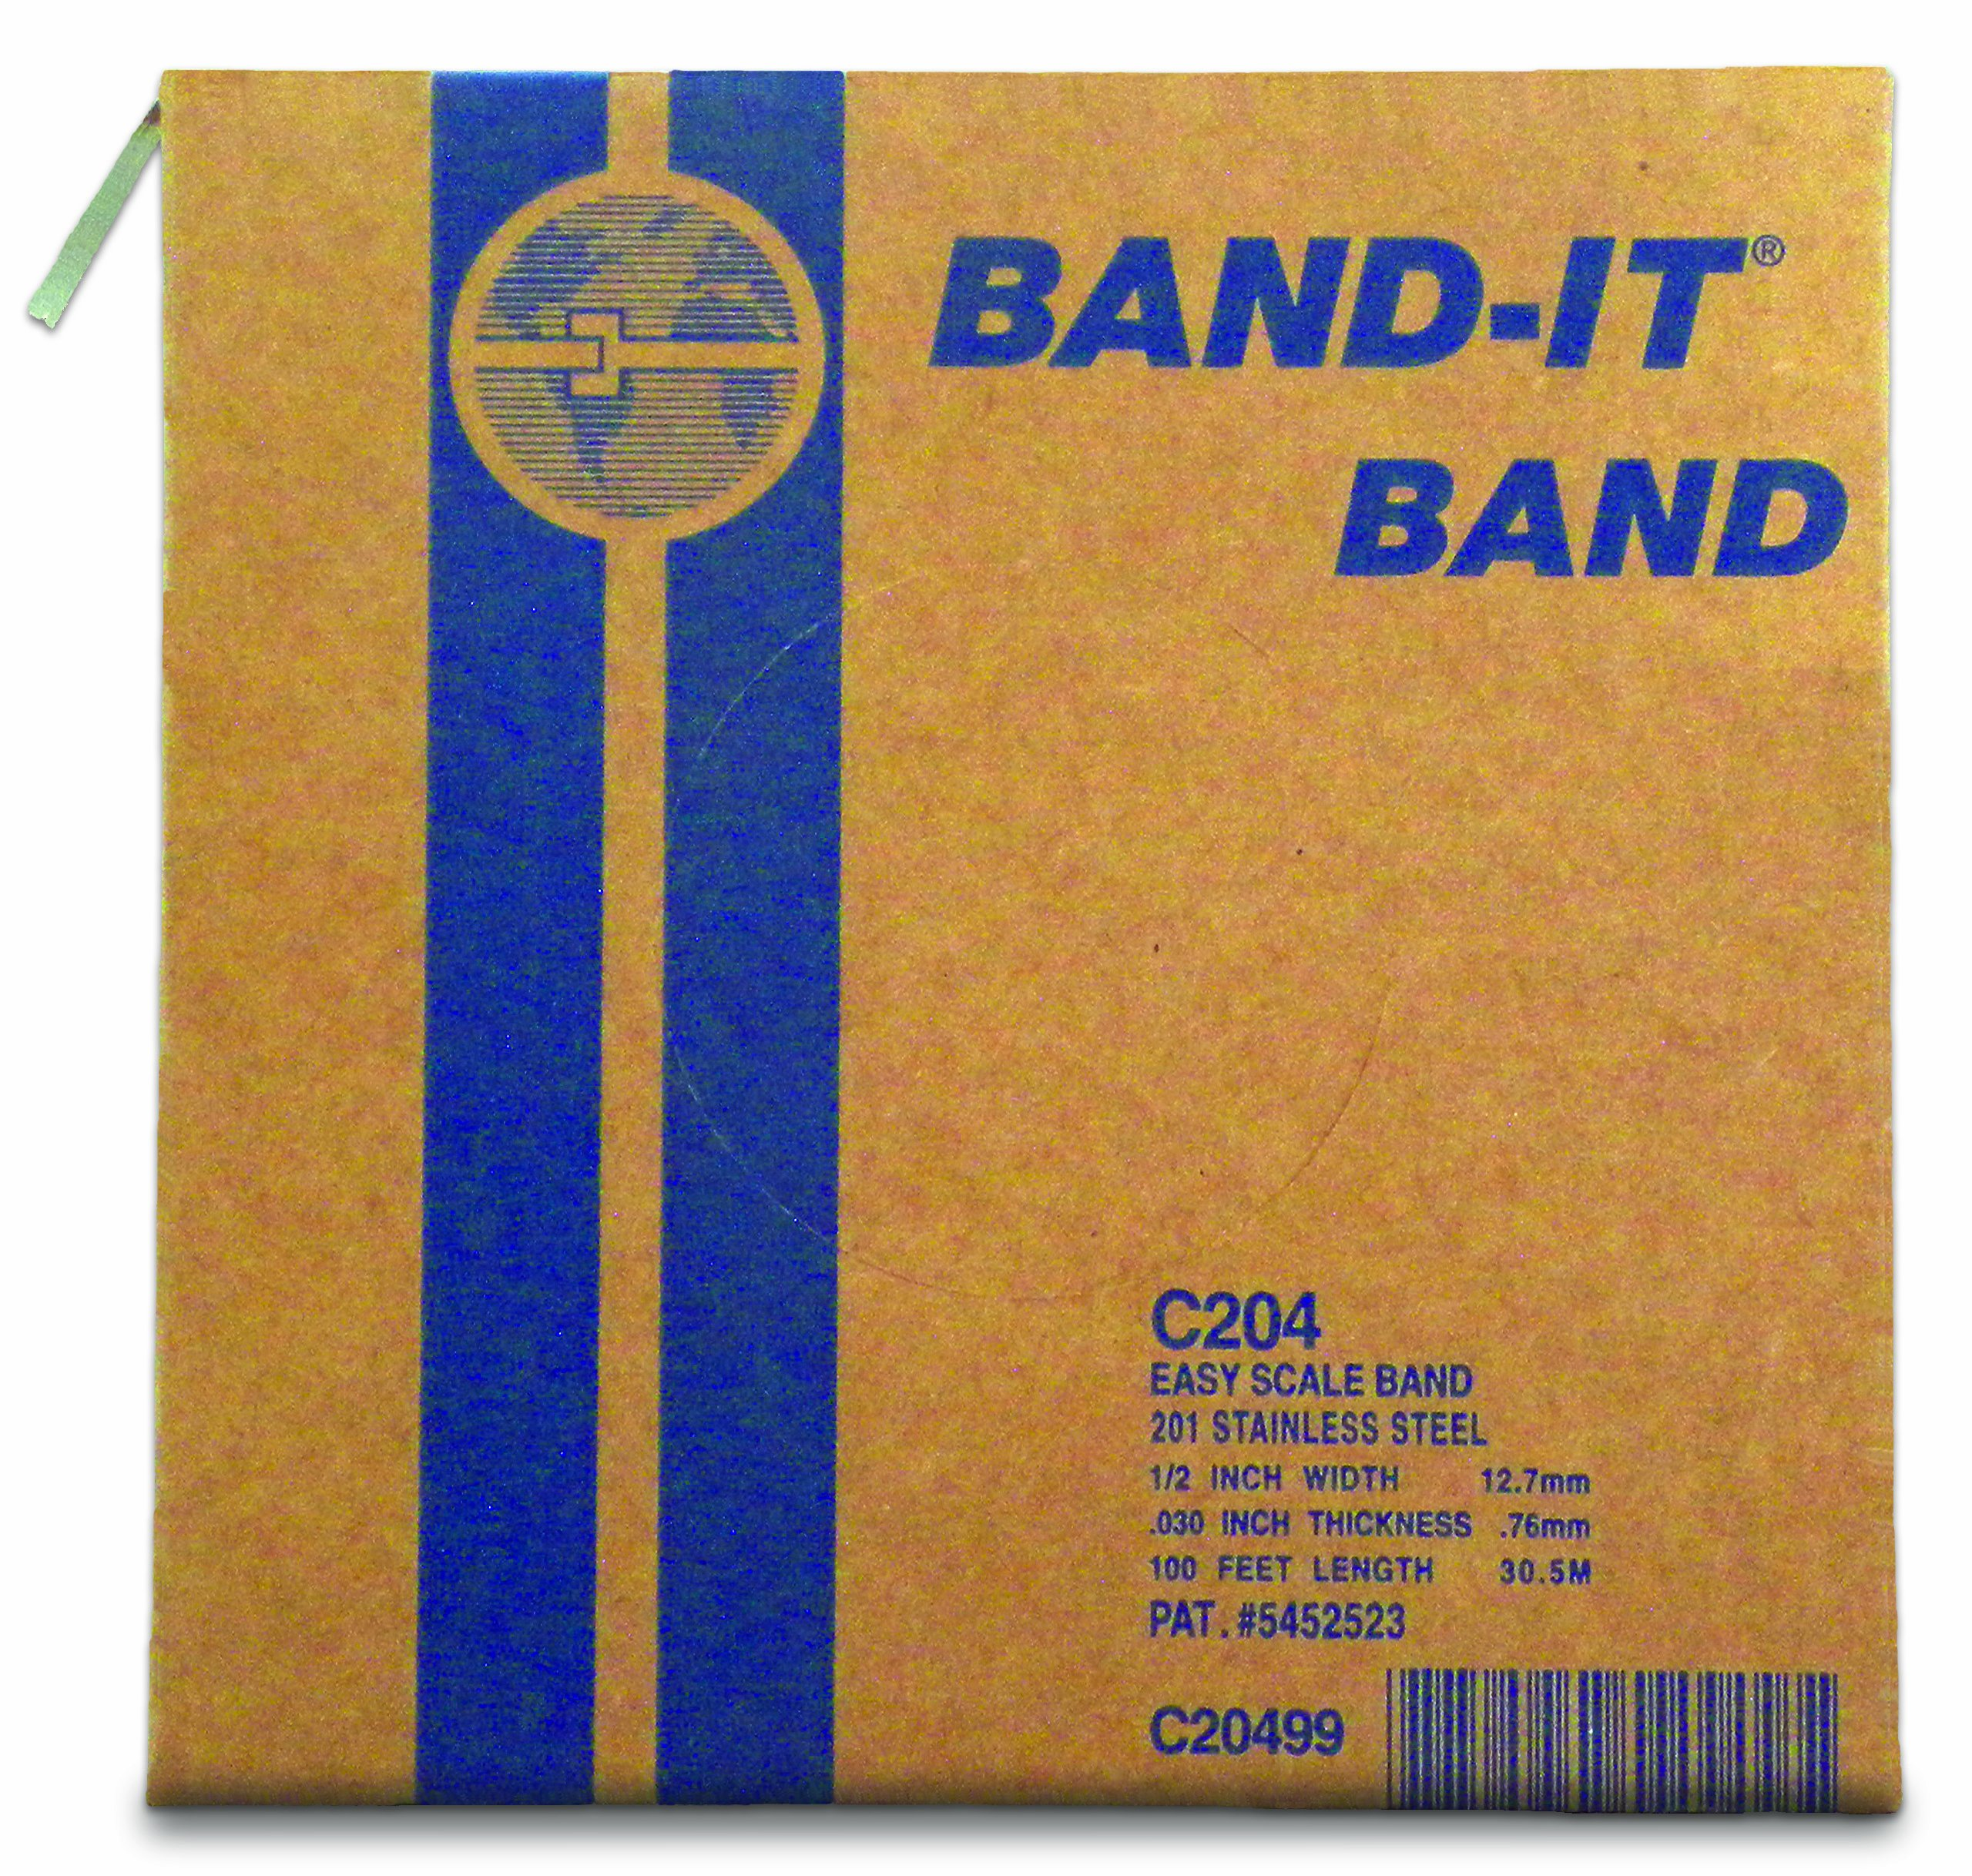 BAND-IT C20499 201 Stainless Steel Bright Annealed Finish Band, 1/2'' Width X 0.030'' Thick, 100 Feet Roll by Band-It